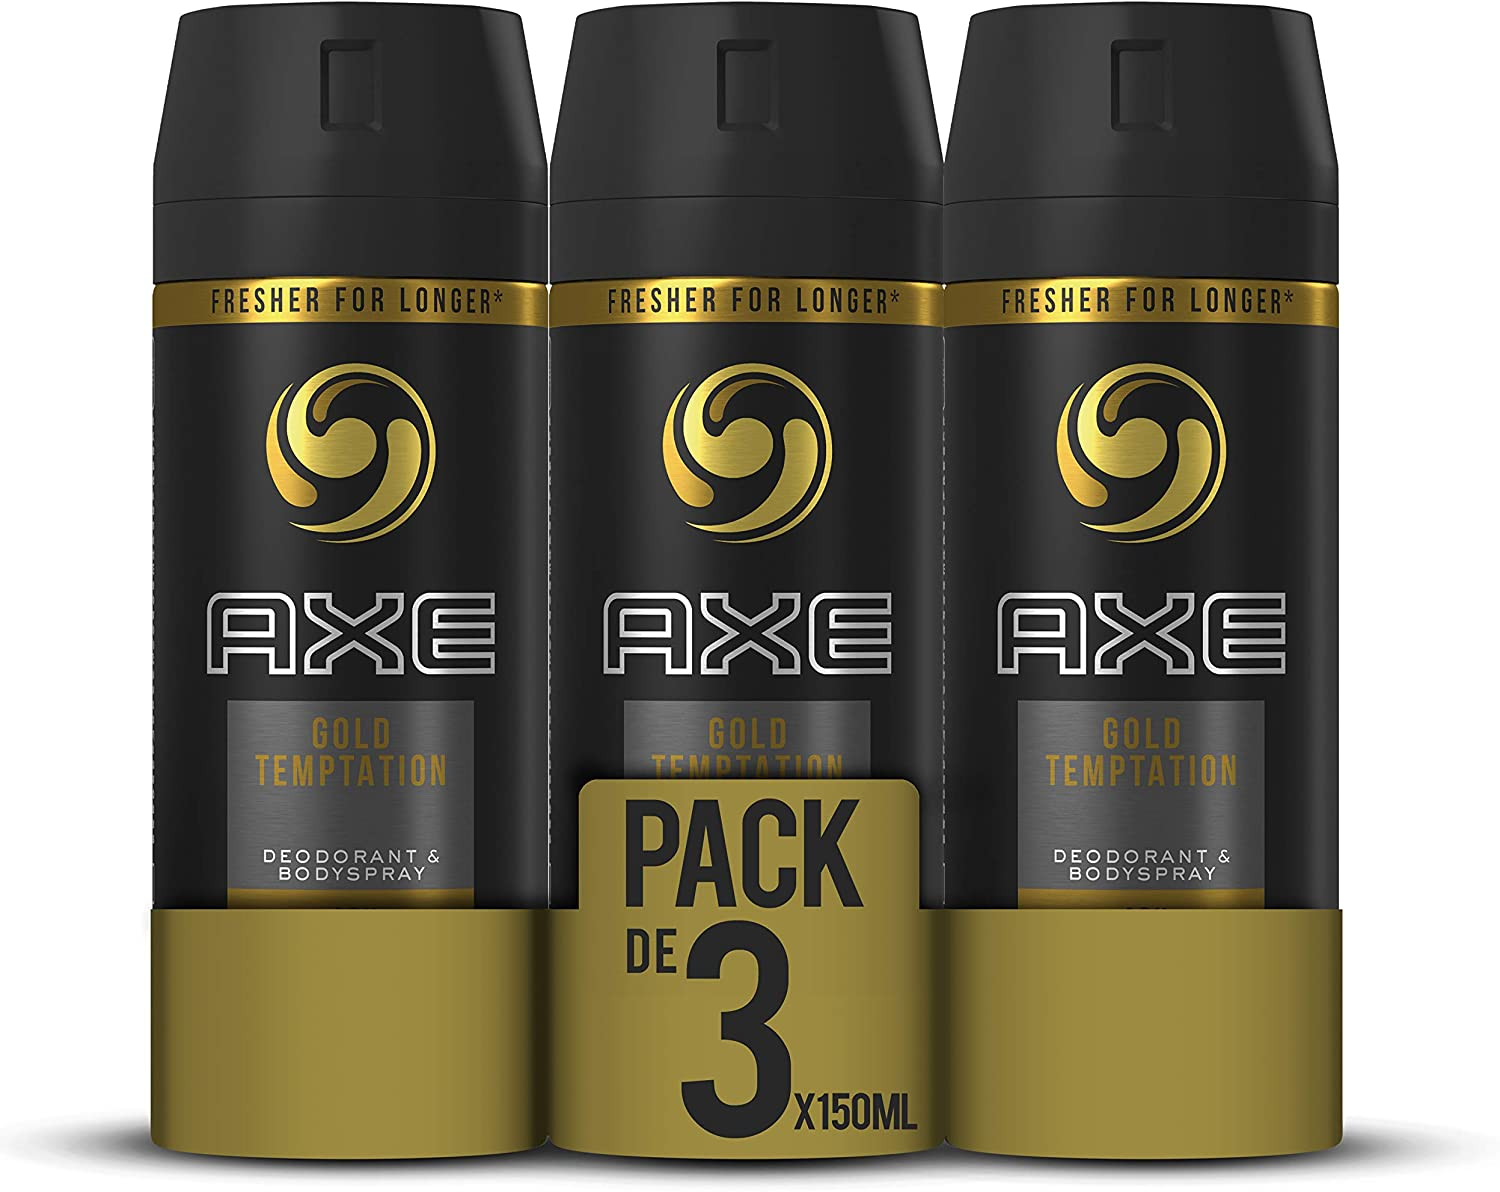 AXE Gold Temptation - Desodorante Bodyspray para hombre, 48 horas ...